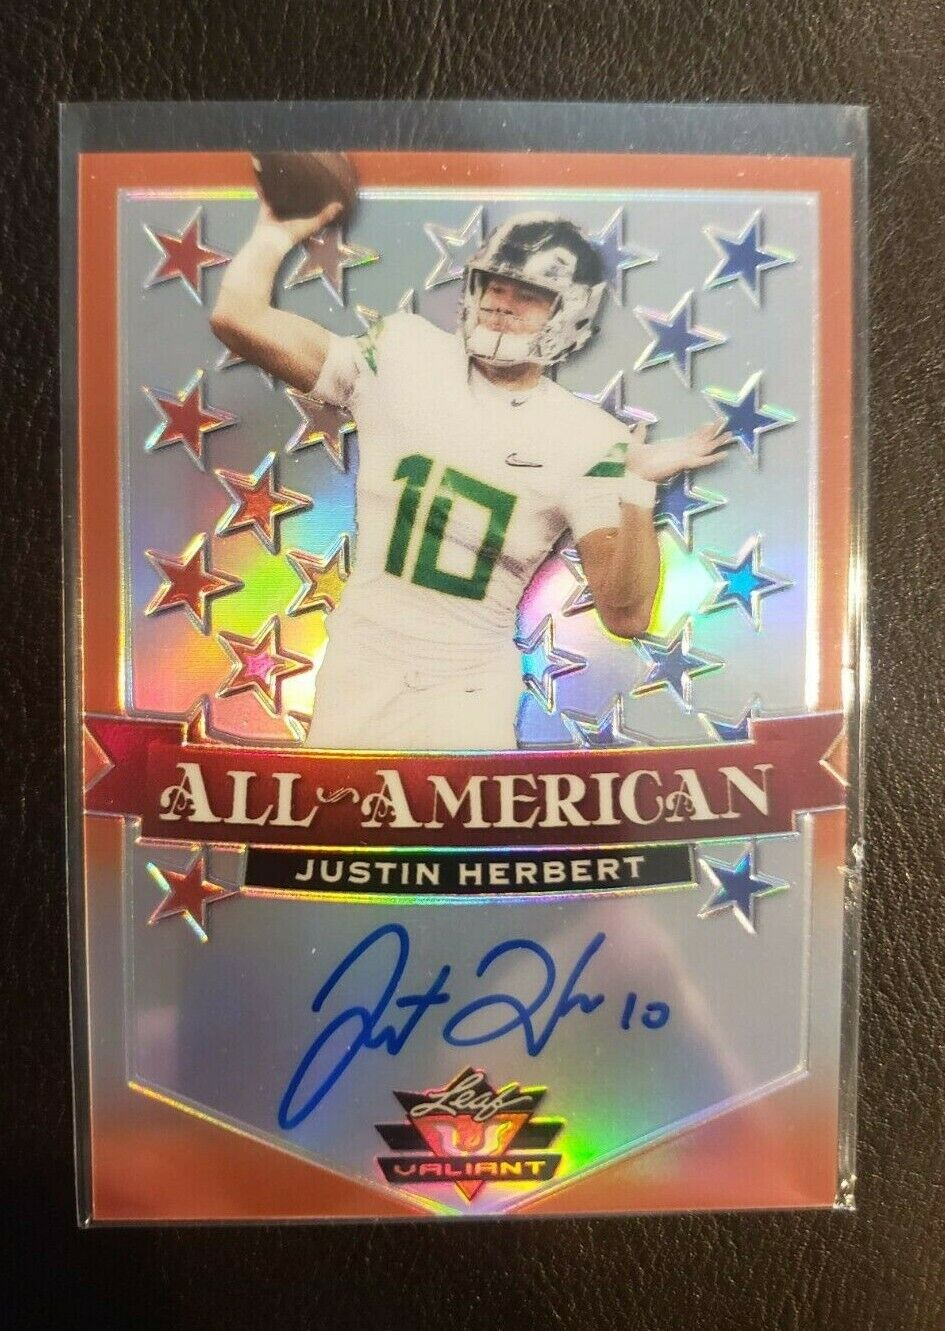 2020 LEAF ALL AMERICAN JUSTIN HERBERT ORANGE AUTO 27/50 ON CARD  - $101.00